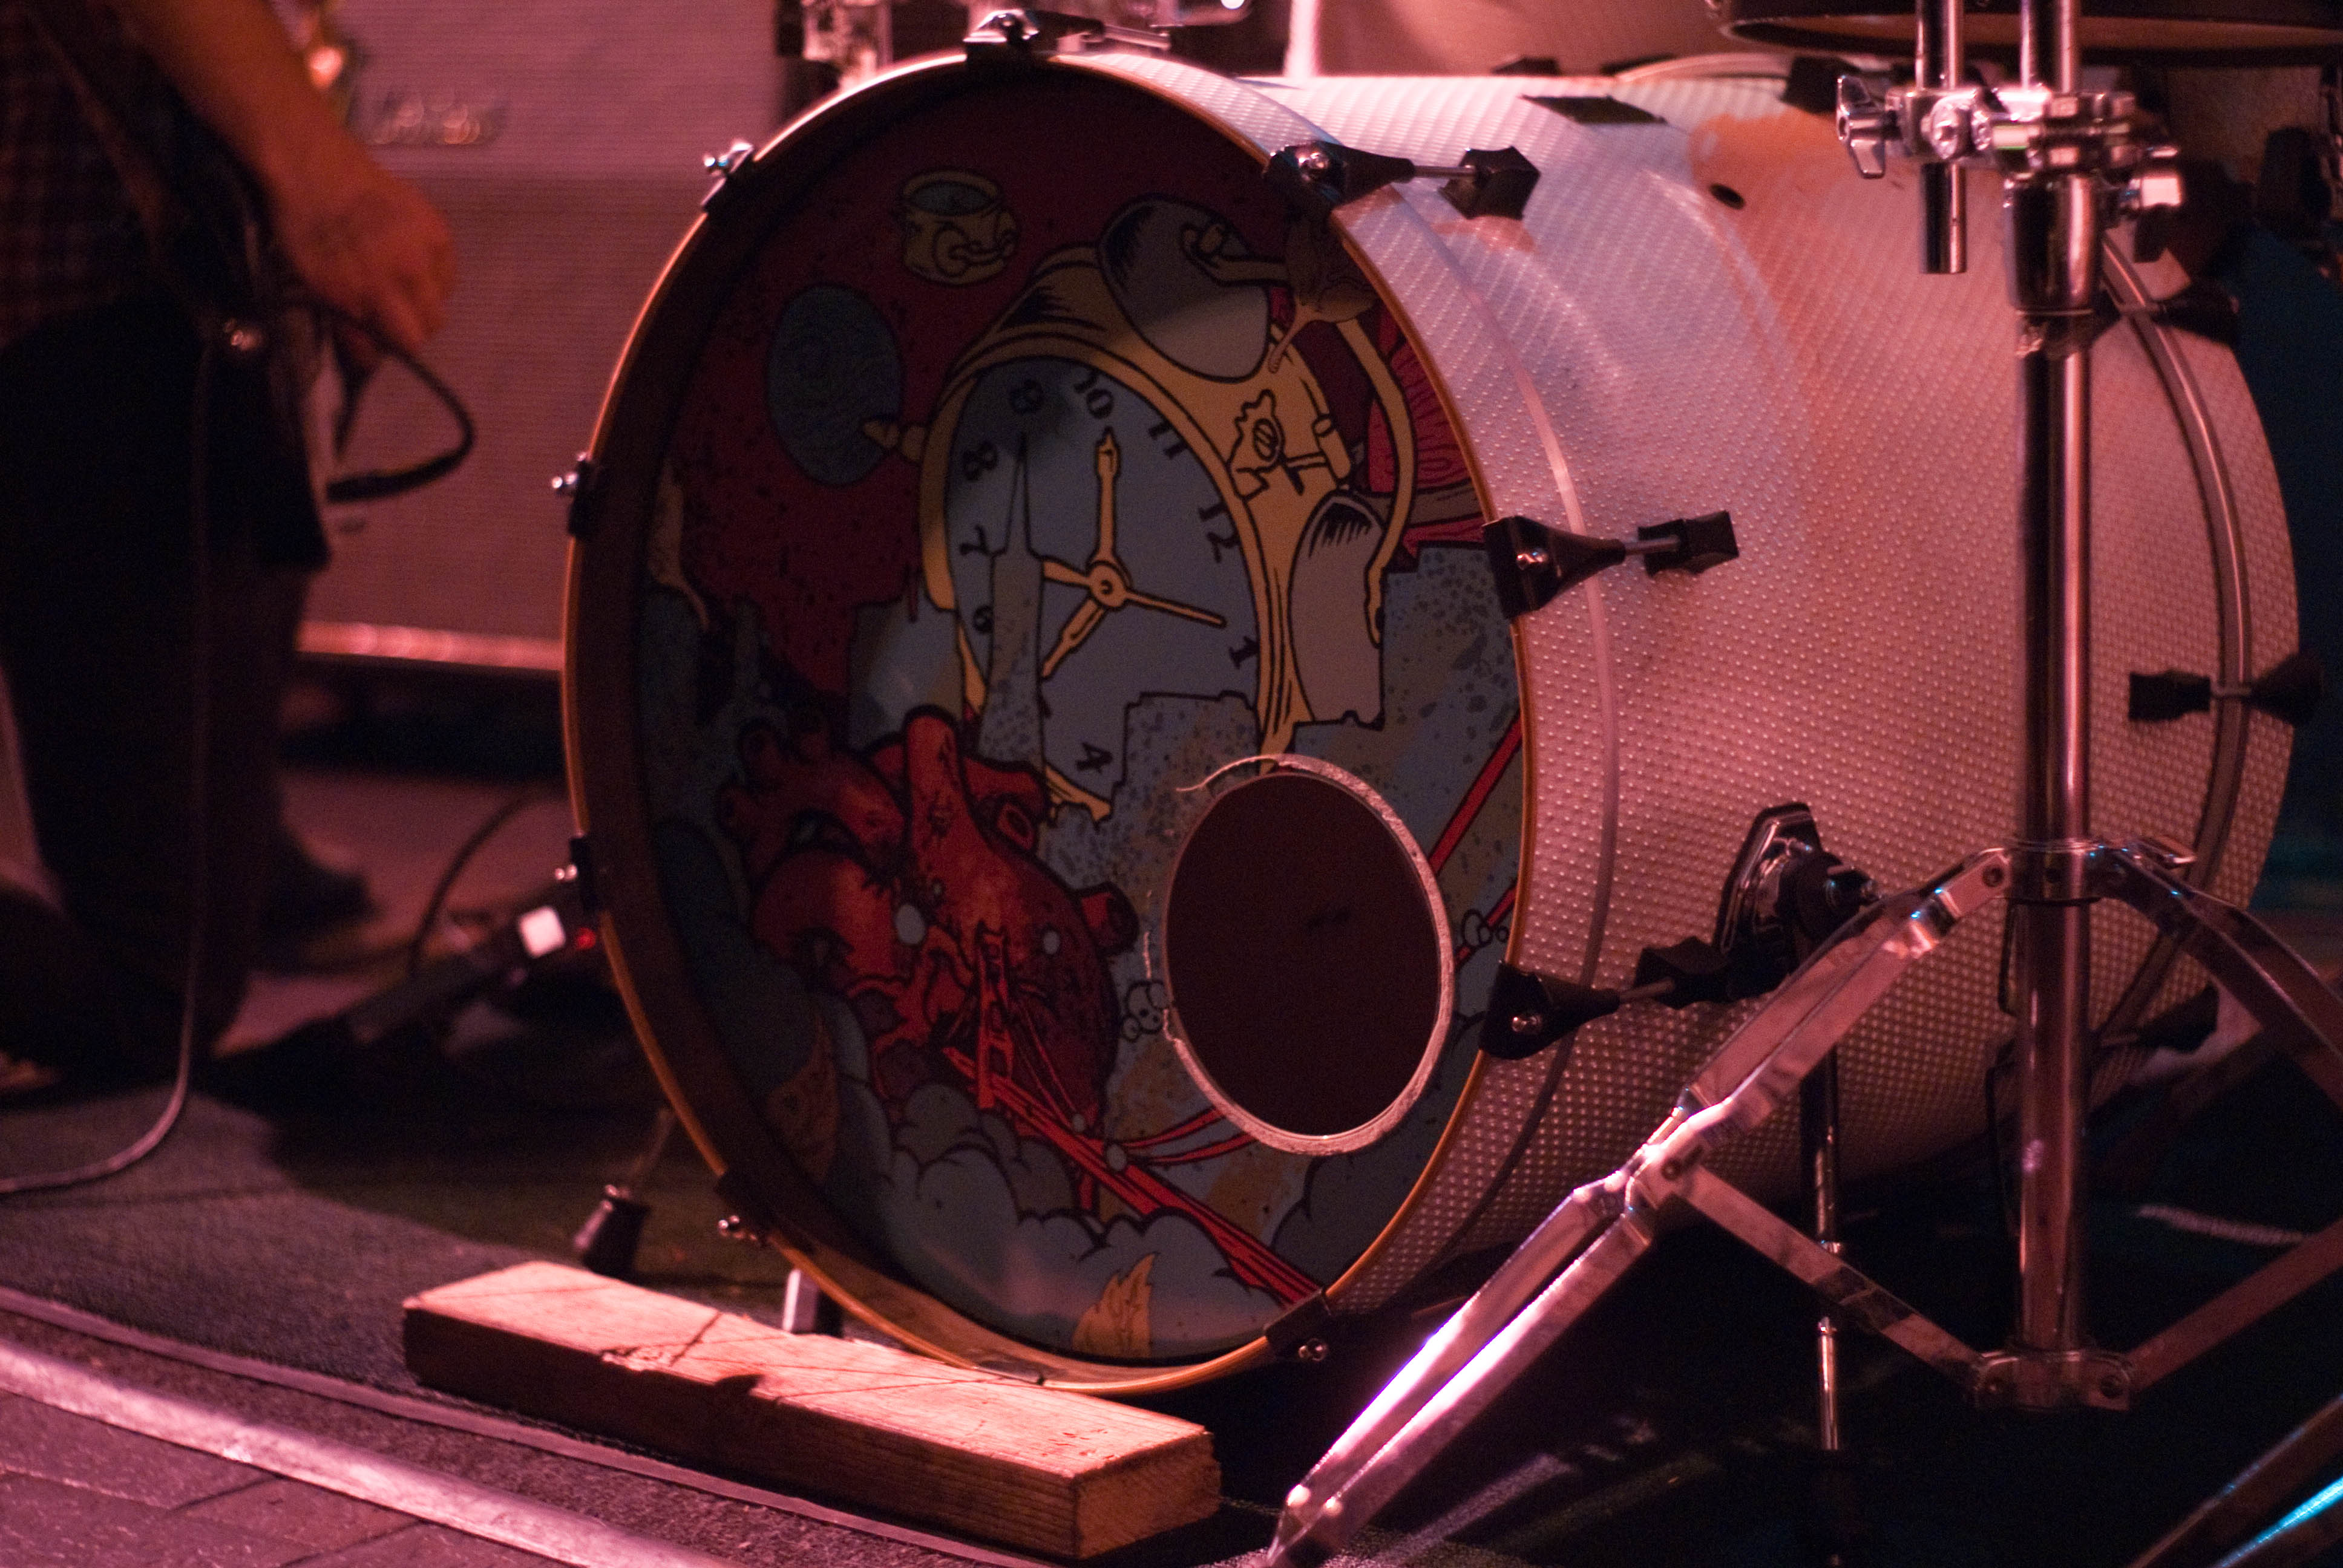 12570 Heartsounds' Until We Surrender artwork on bass drum skin at Sub-Mission